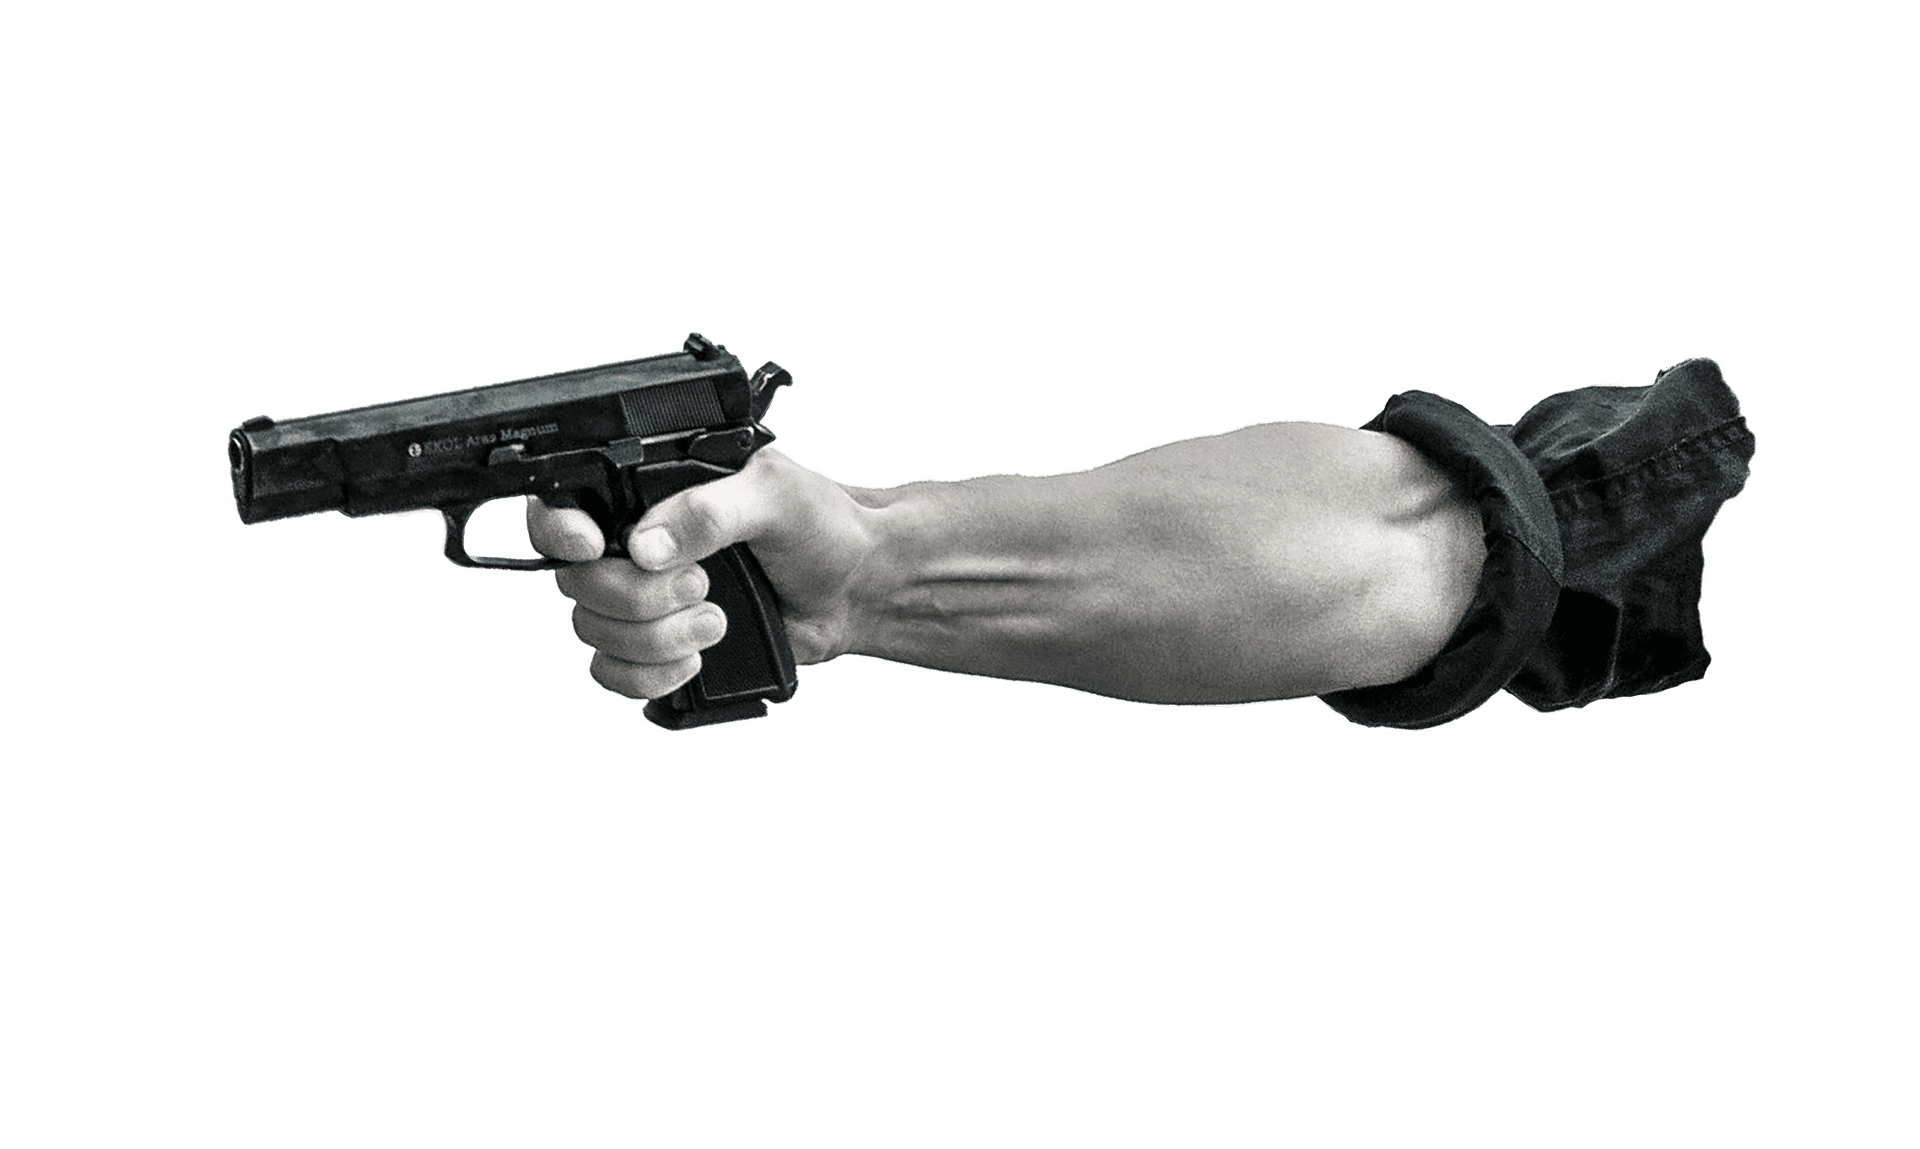 Picture showing a man pointing a gun | Source: Pixabay